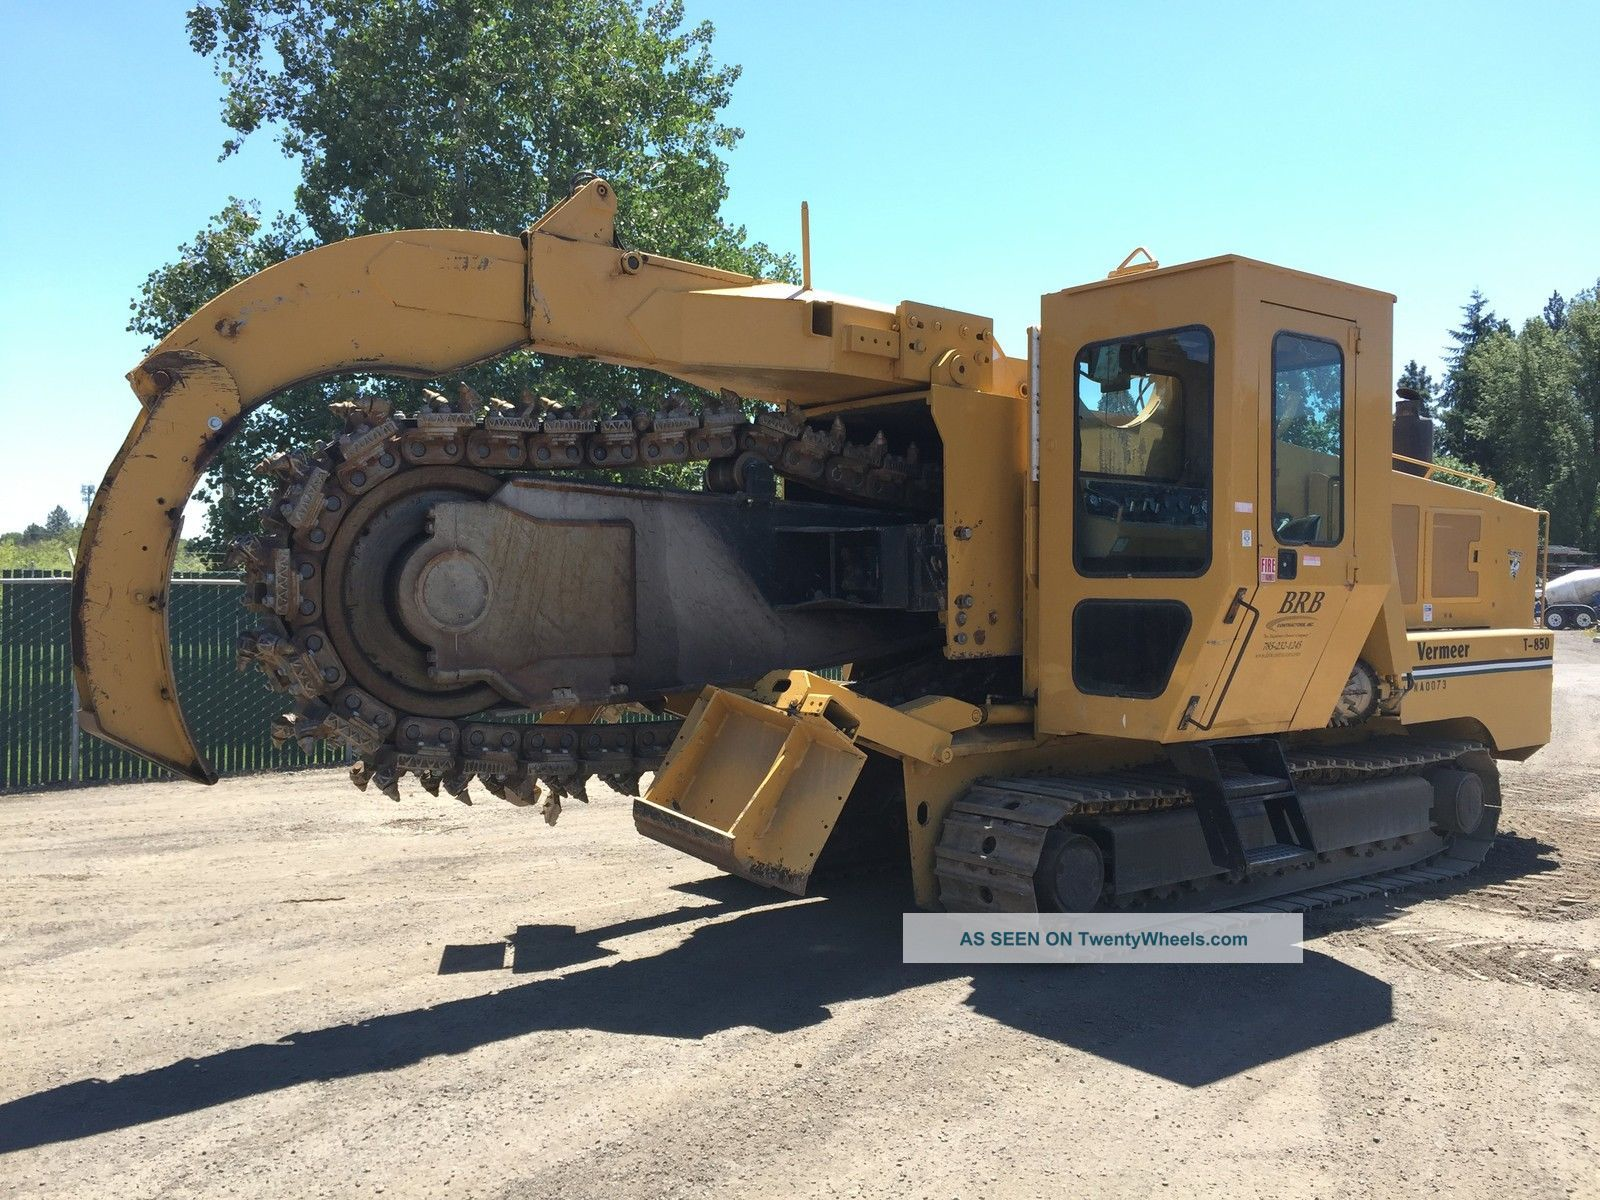 1992 Vermeer T850 Crawler Trencher Trenchers Trenchers - Riding photo